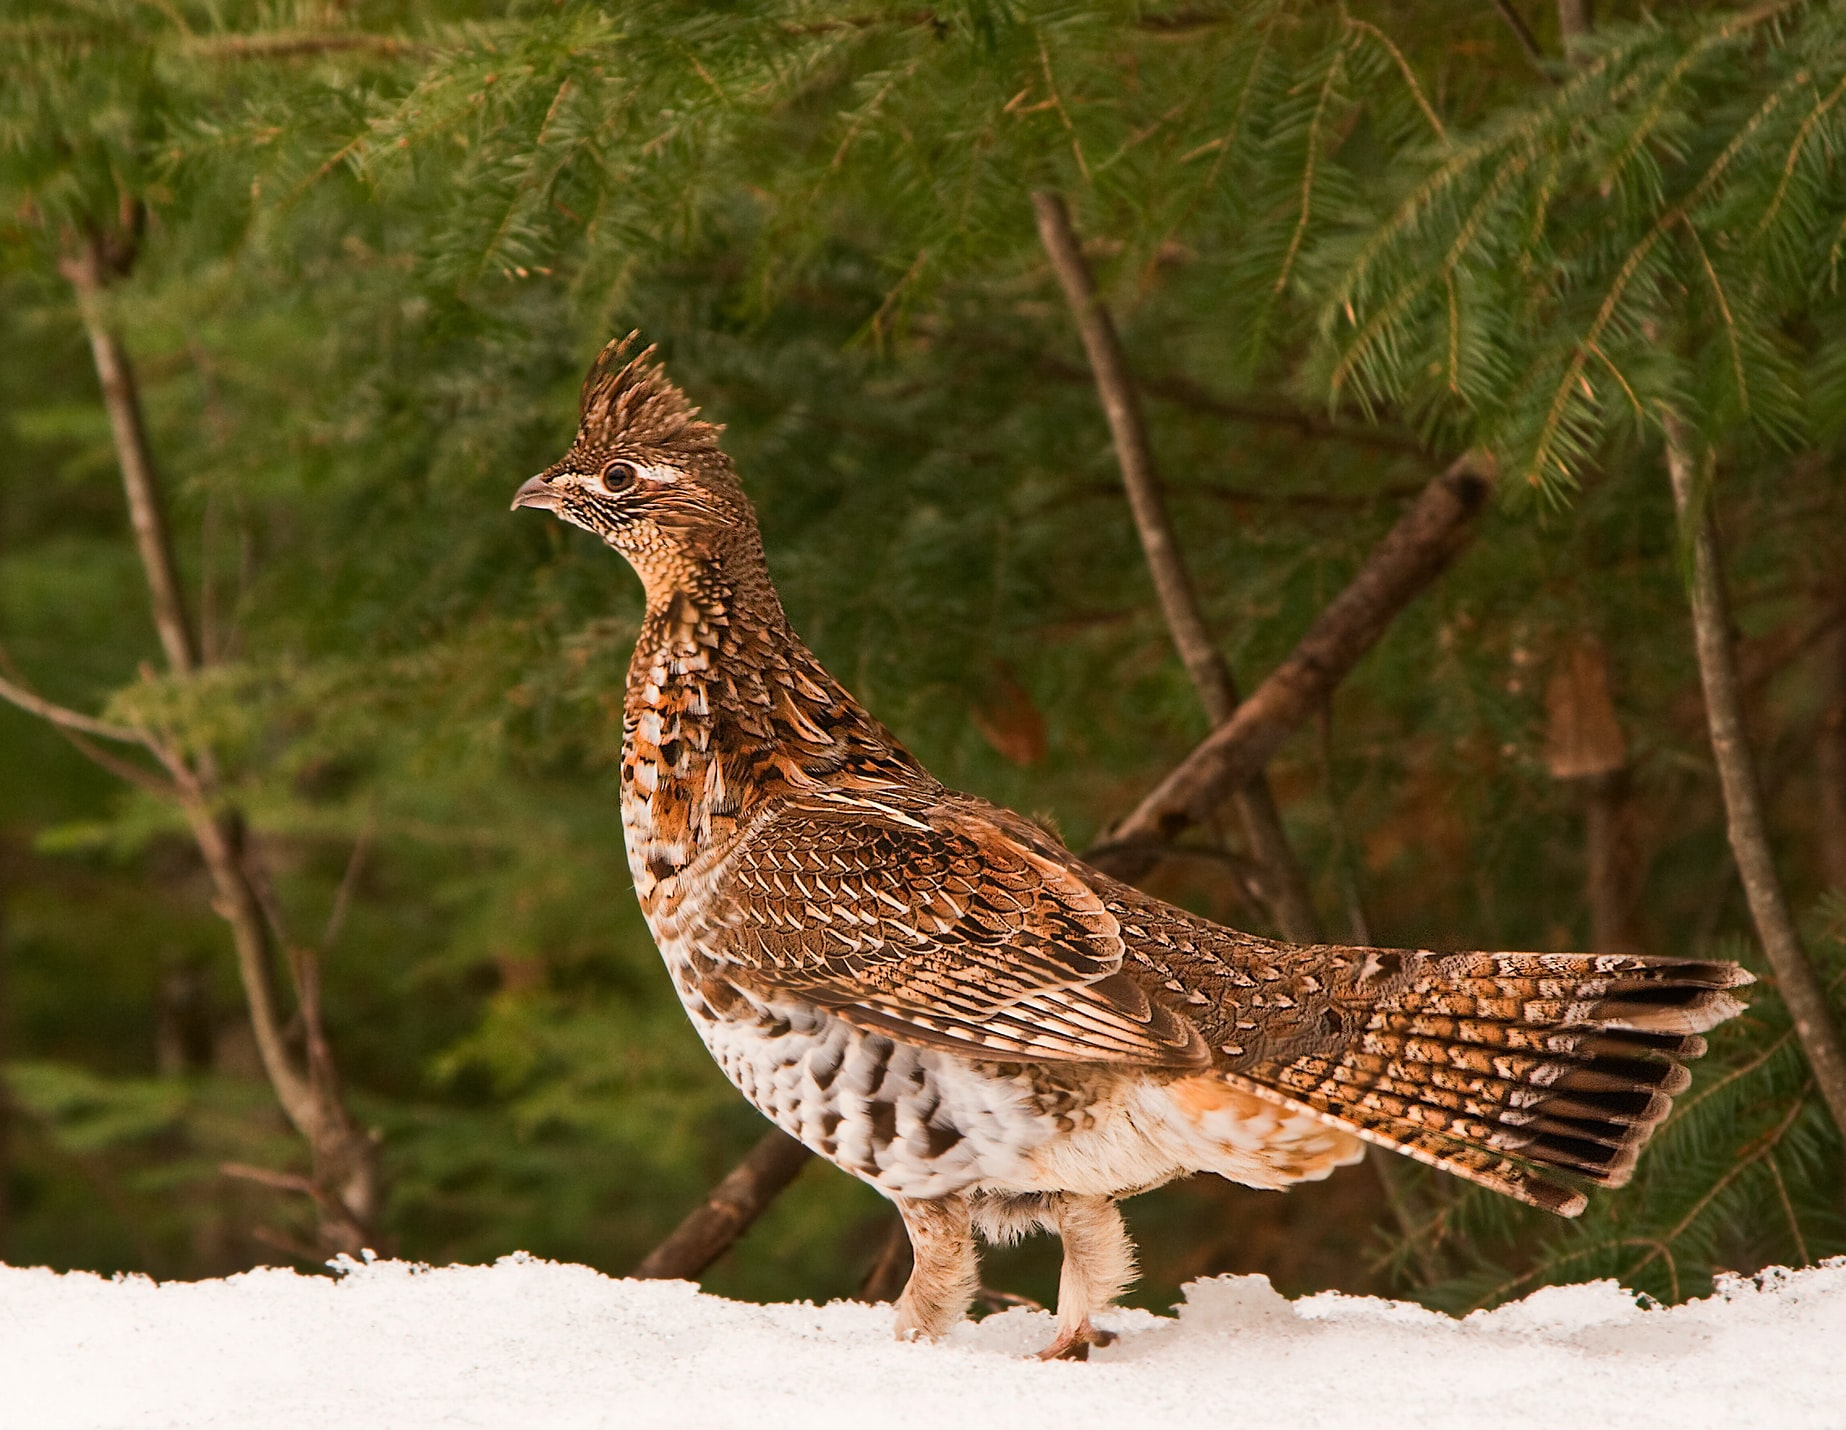 Aspen Forests Provide Great Habitat for Ruffed Grouse